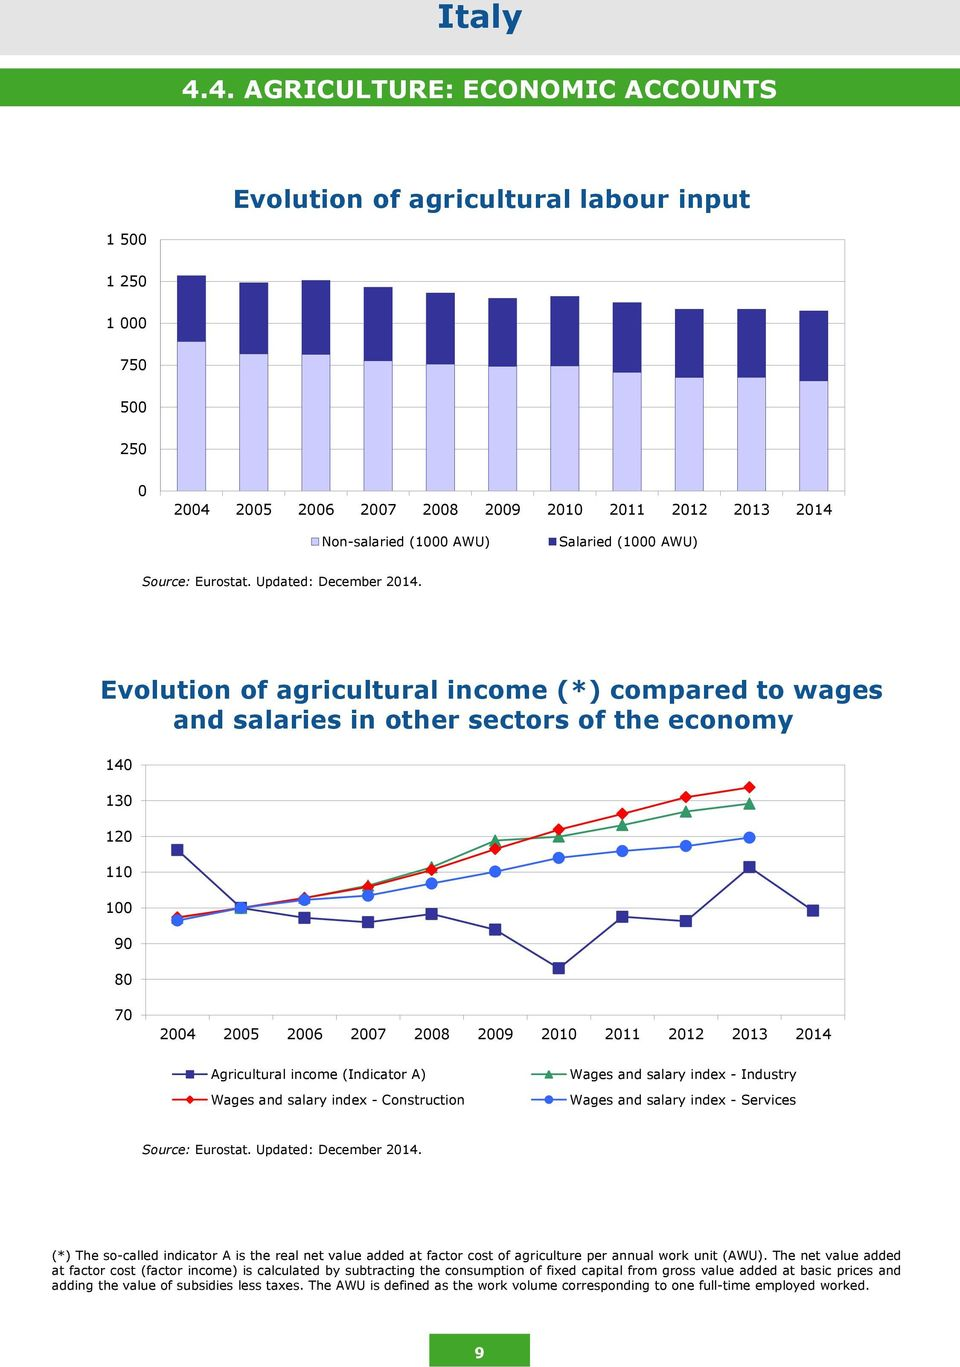 Evolution of agricultural income (*) compared to wages and salaries in other sectors of the economy 140 130 120 110 100 90 80 70 2004 2005 2006 2007 2008 2009 2010 2011 2012 2013 2014 Agricultural